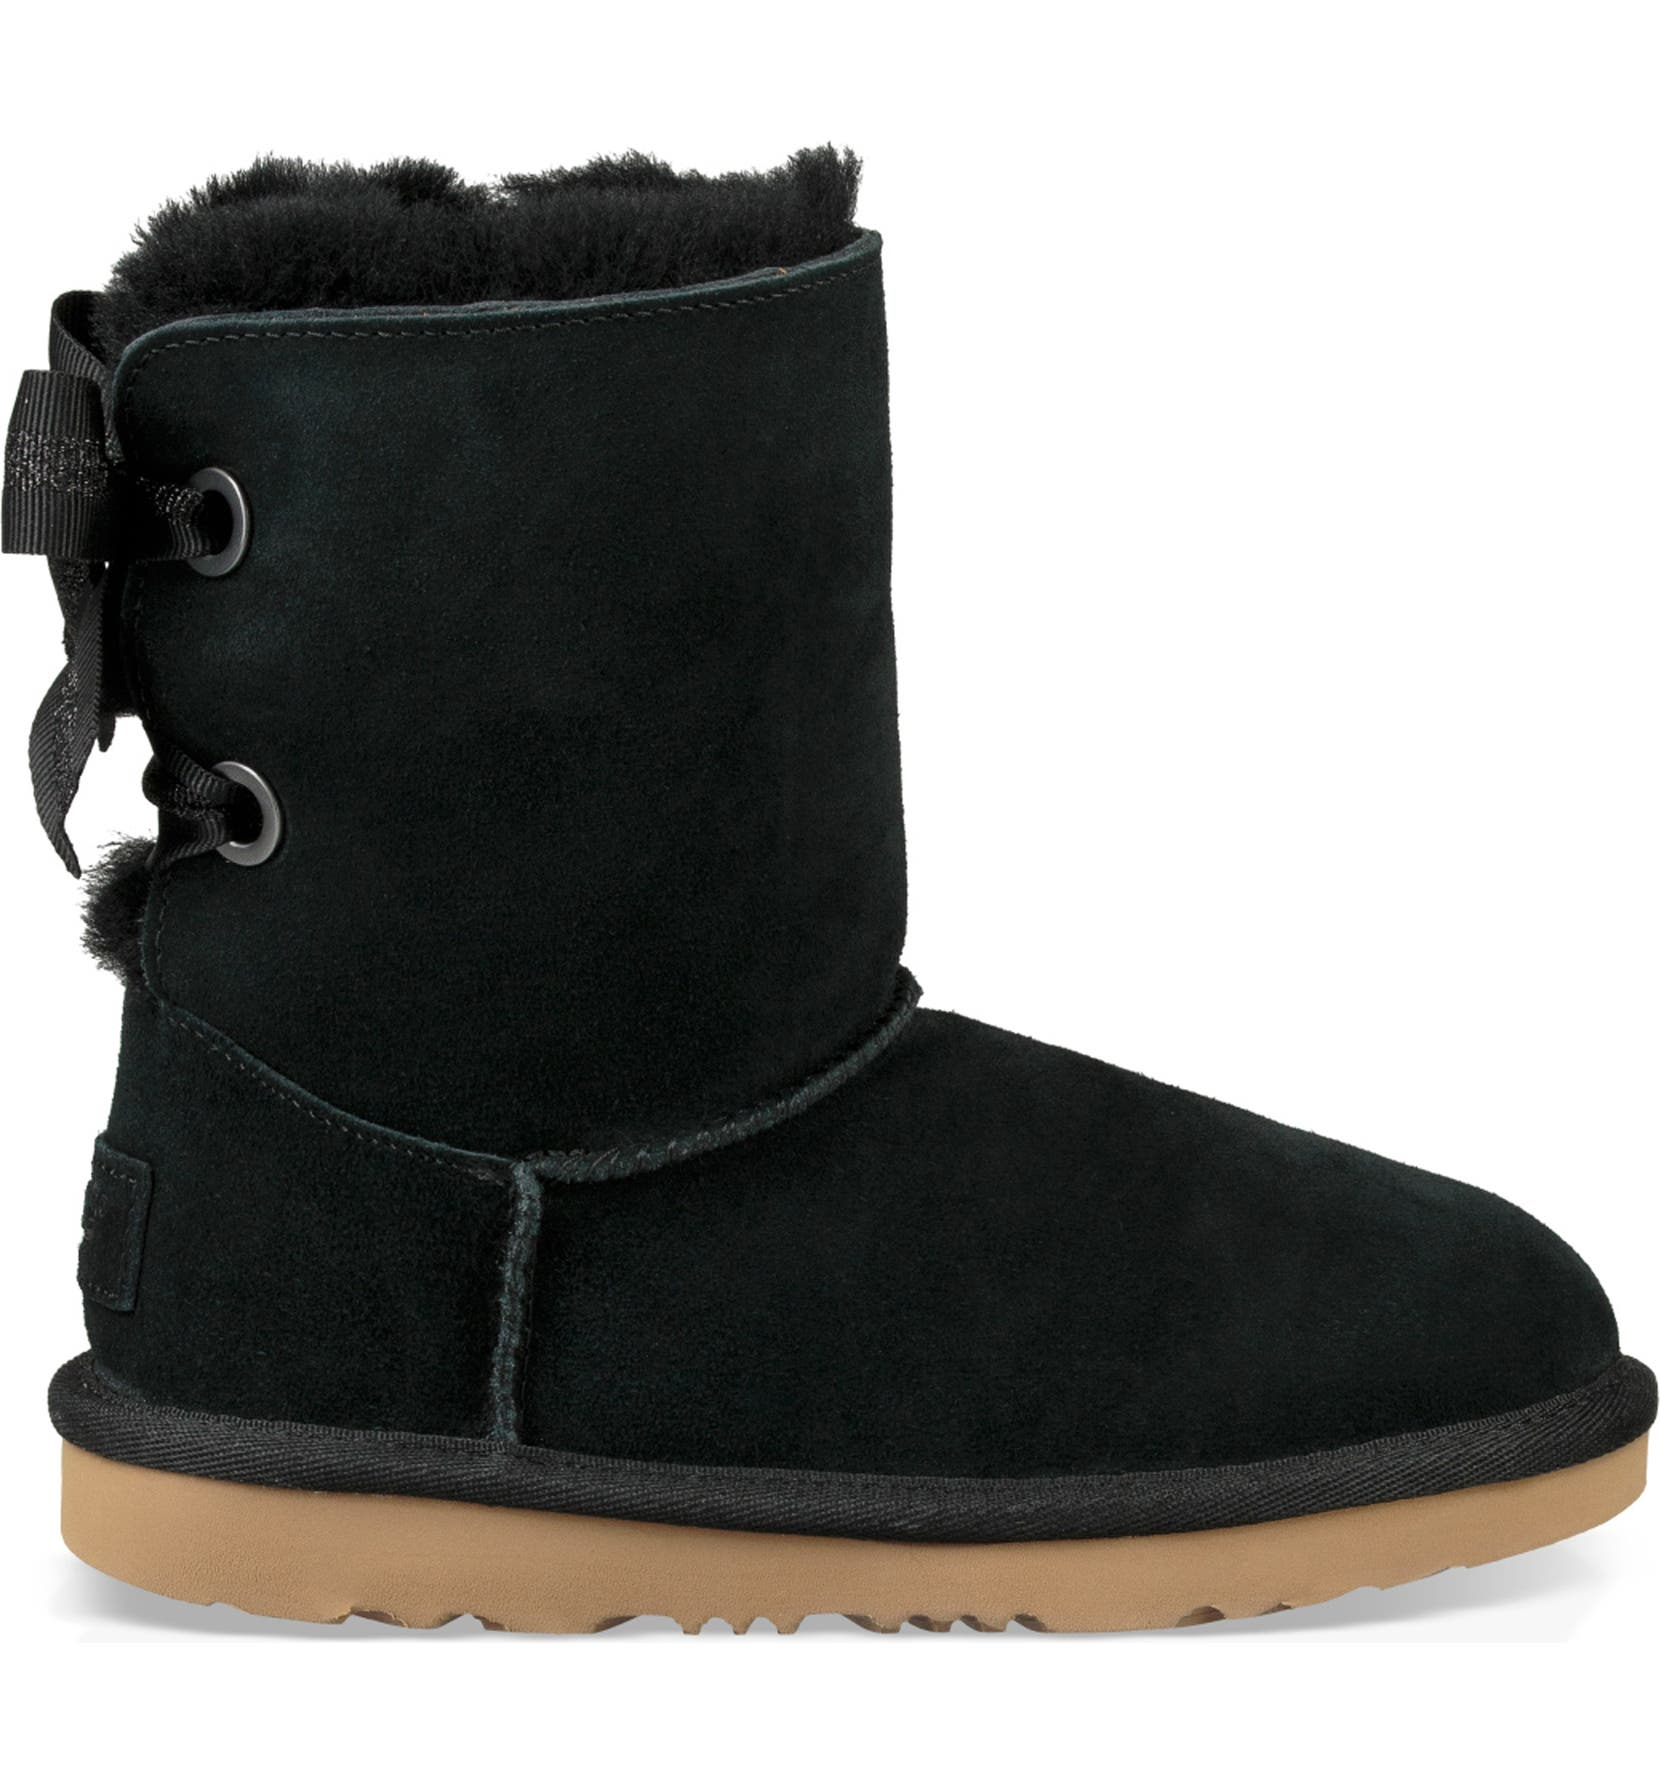 3ae278a736e Customizable Bailey Bow II Genuine Shearling Boot